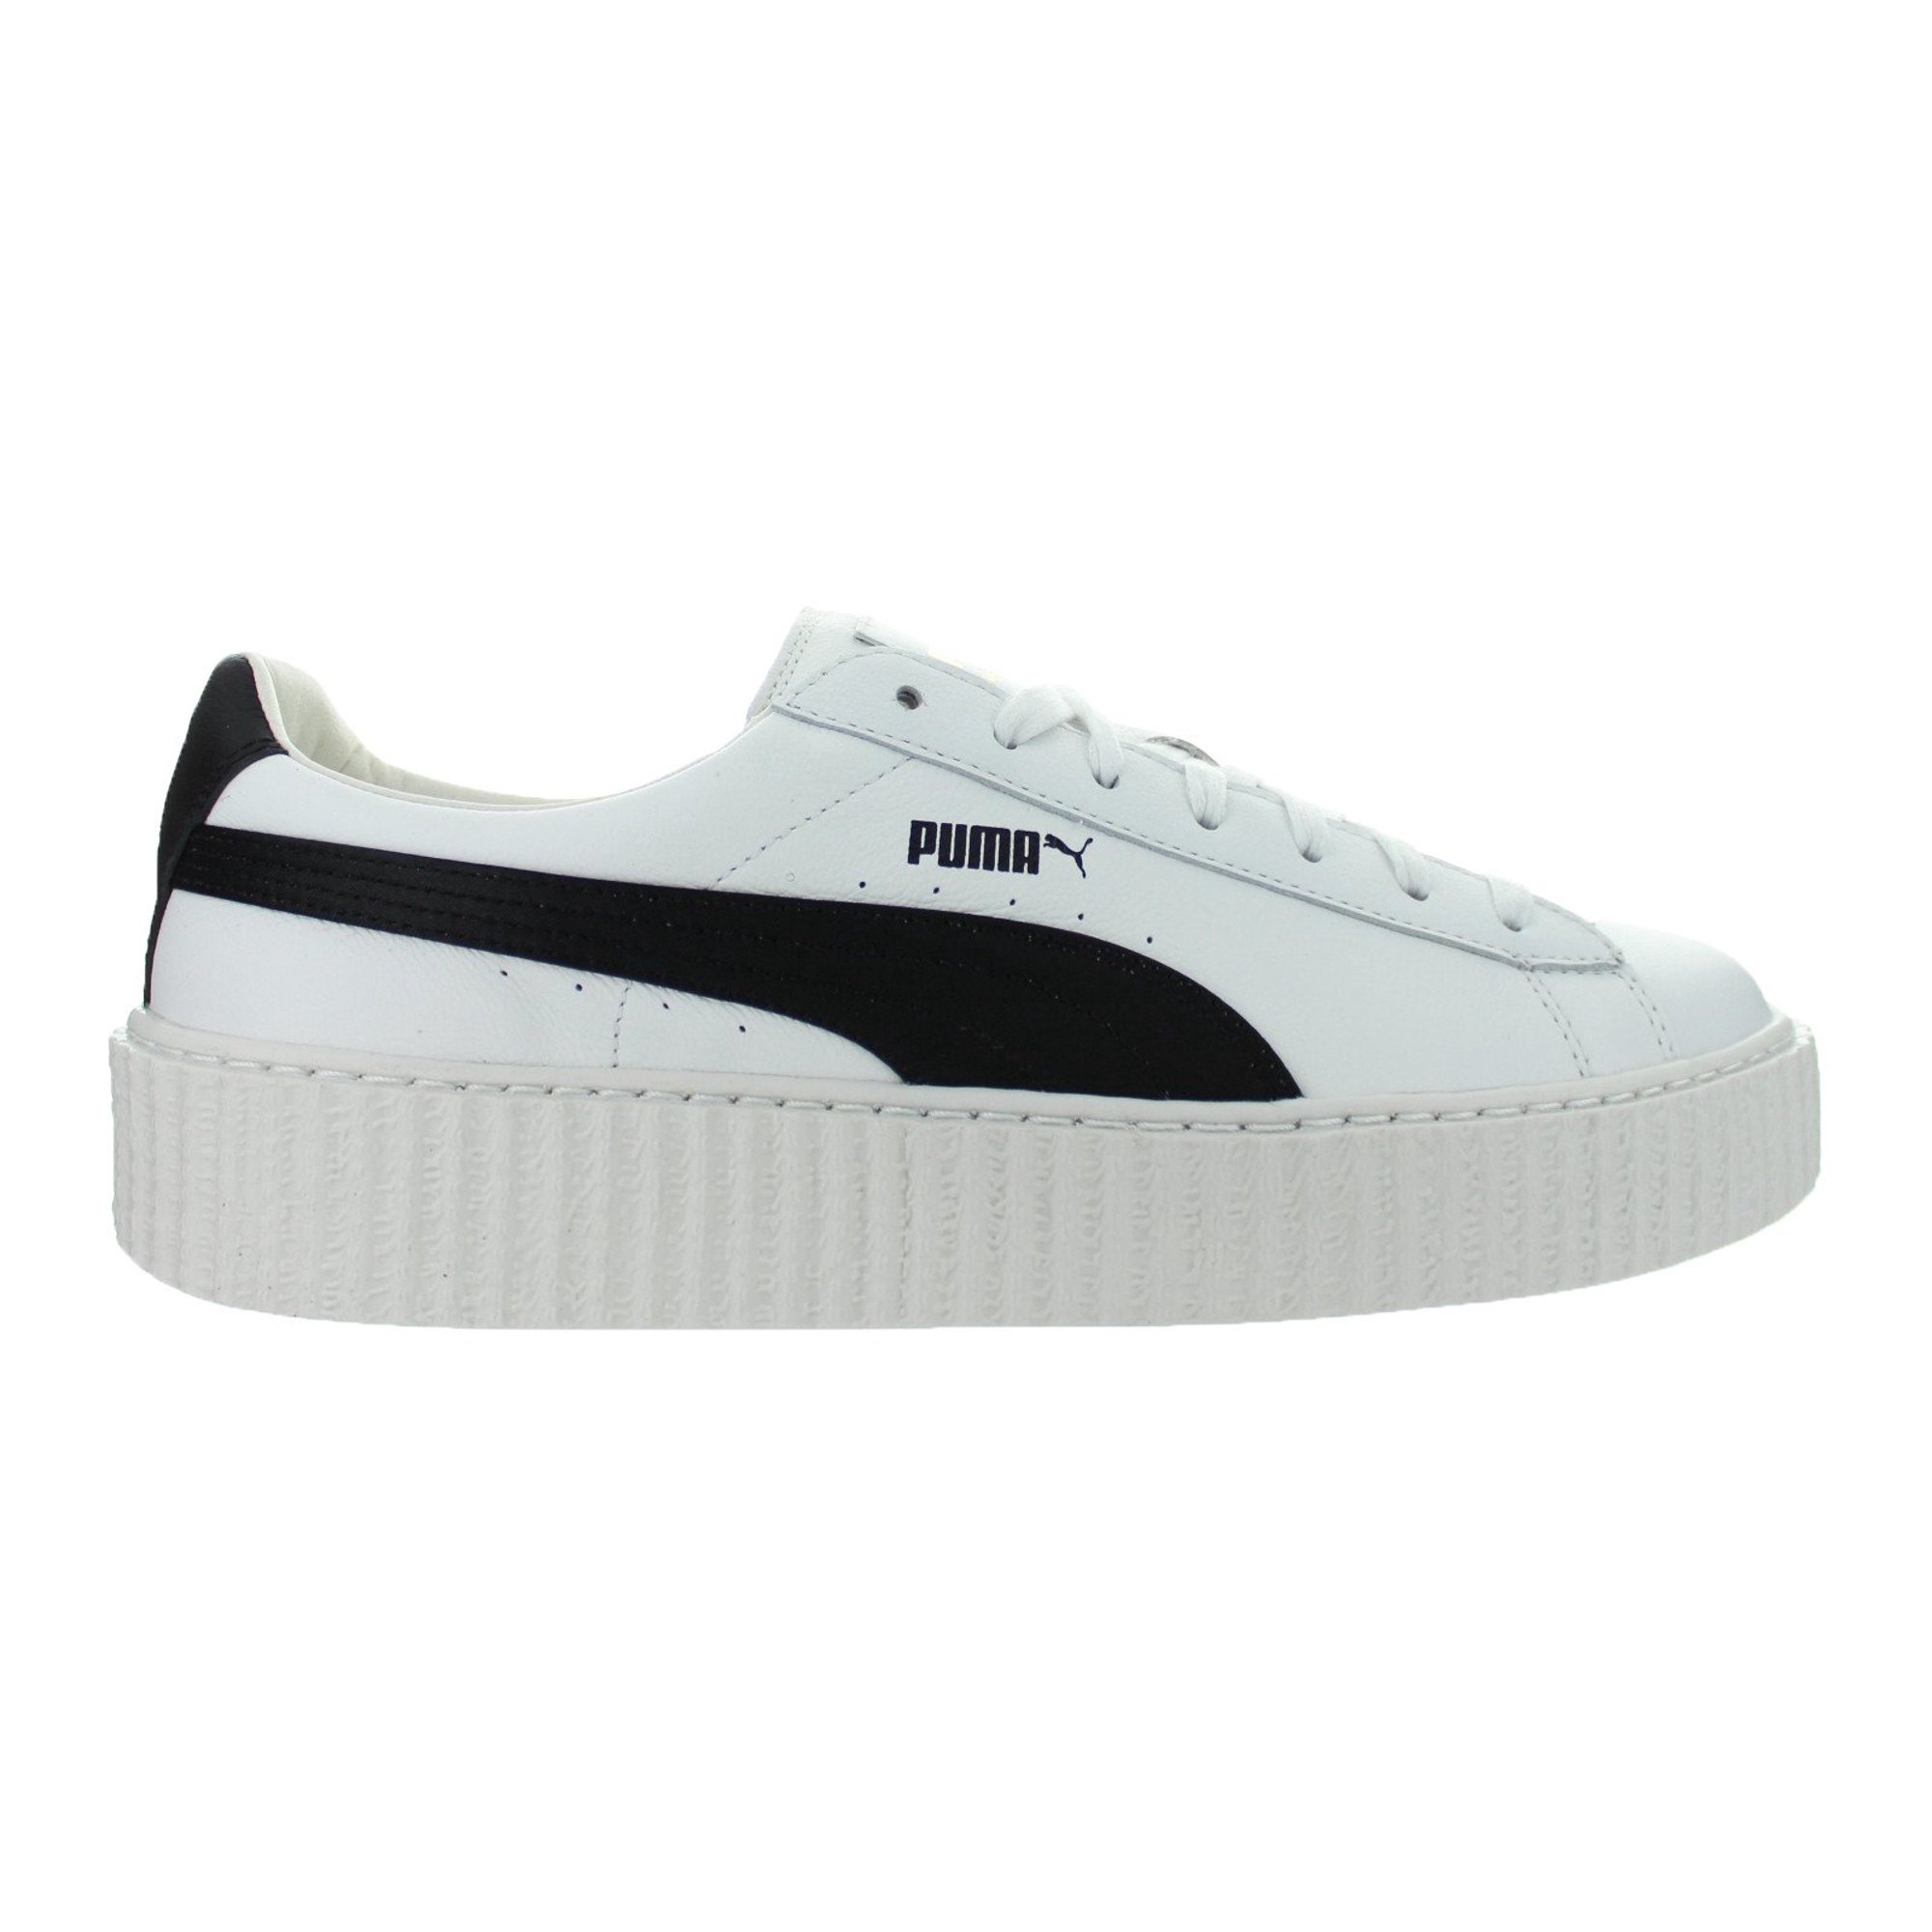 30ce6781b7b8 Mens Puma x Fenty By Rihanna Creeper Leather Puma White Puma Black 364